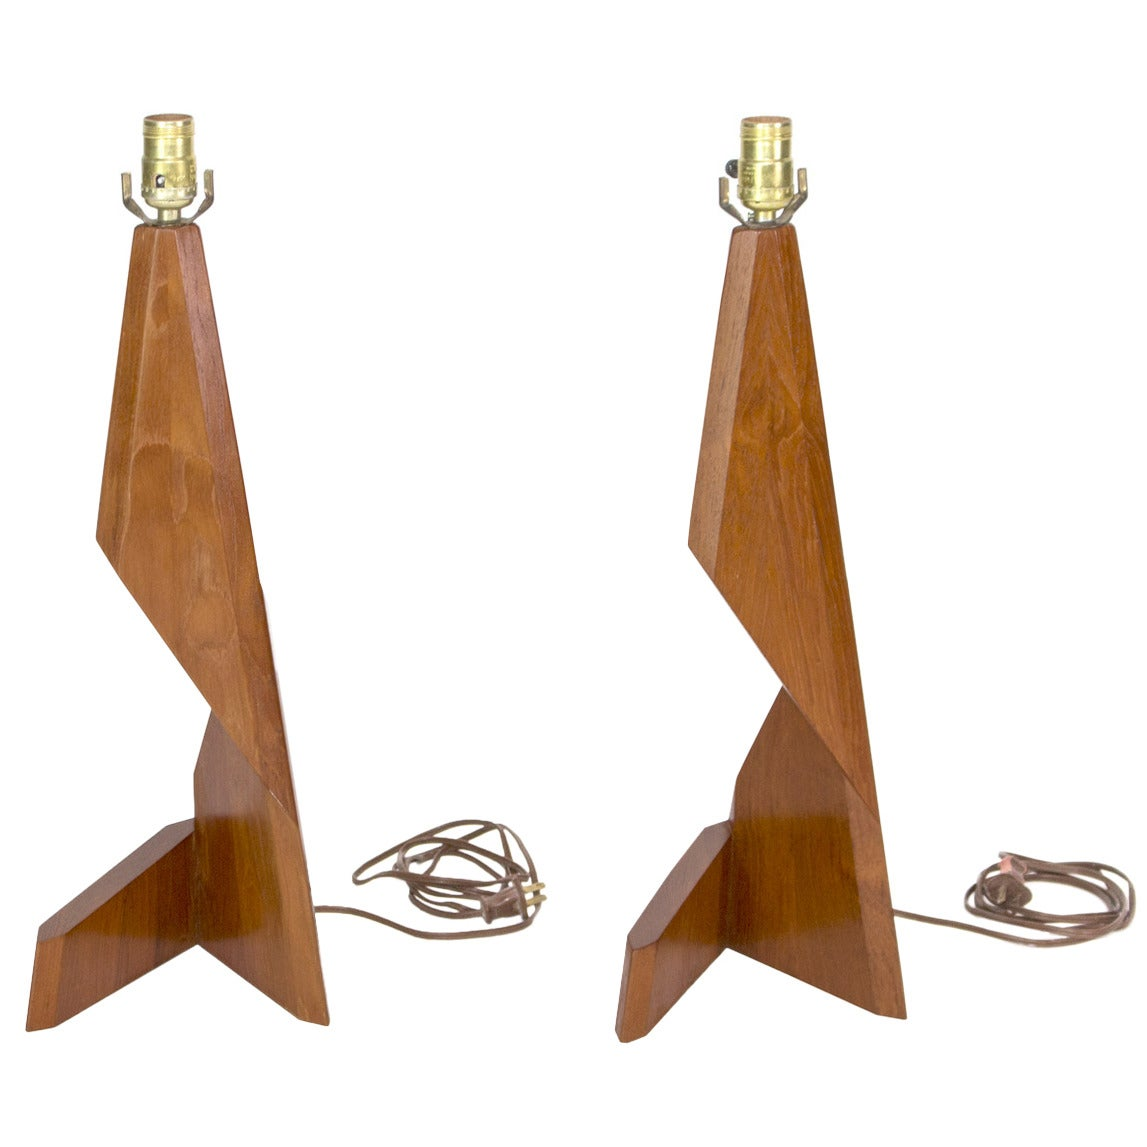 Pair of Sculptural Danish Table Lamps by George Tanier